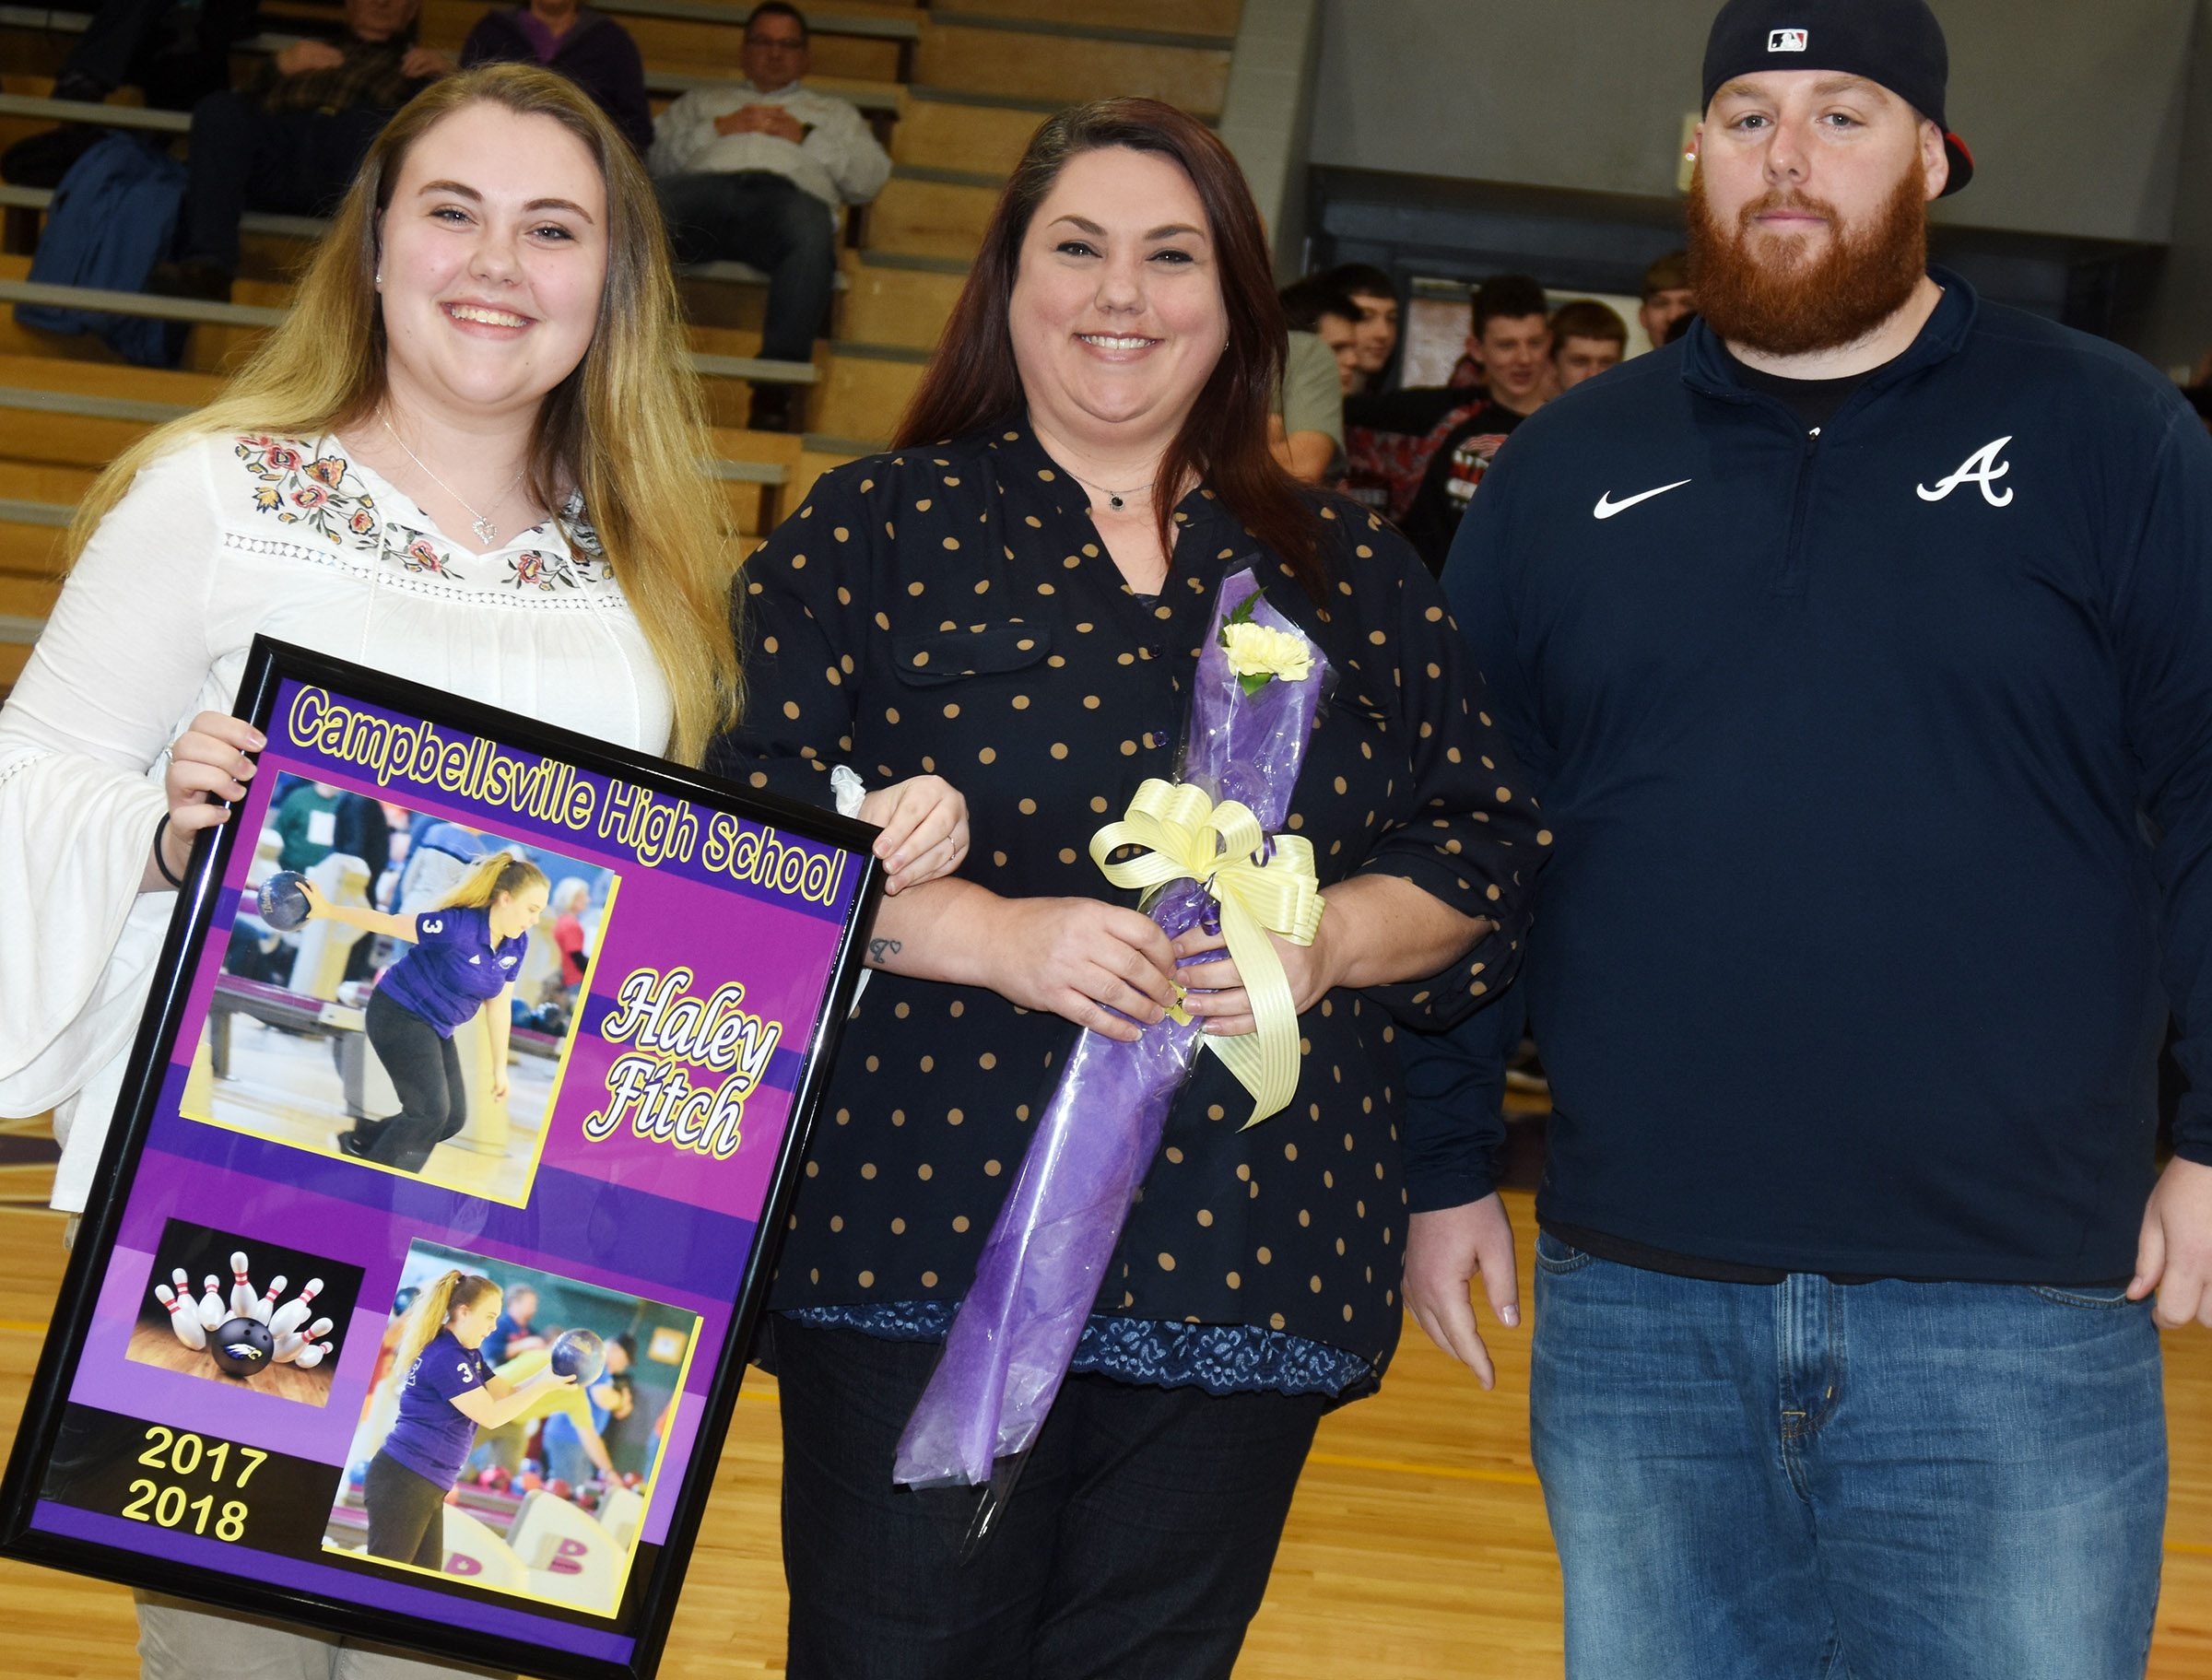 CHS senior bowling team member Haley Fitch is honored. She is pictured with her mother Abby Bowling and head coach Stephen Tucker.